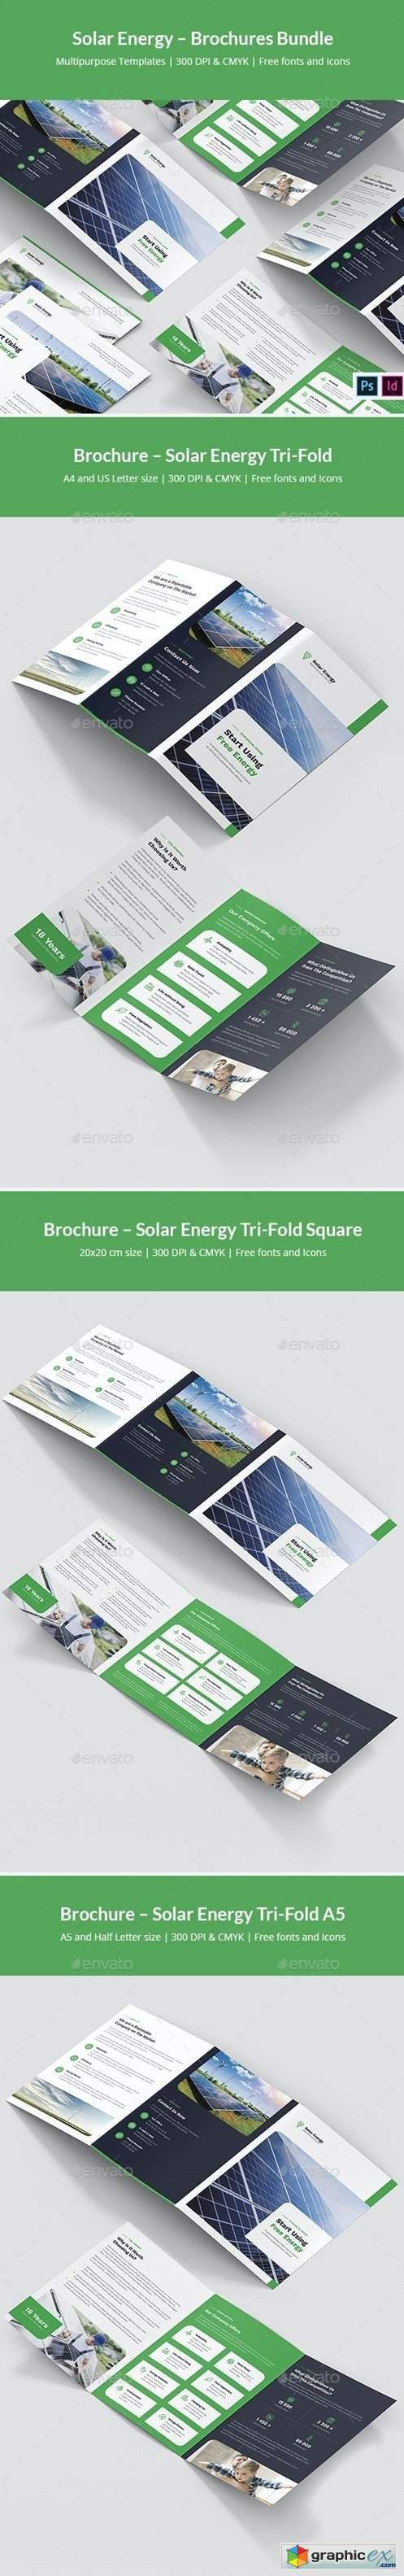 Solar Energy – Brochures Bundle Print Templates 7 in 1